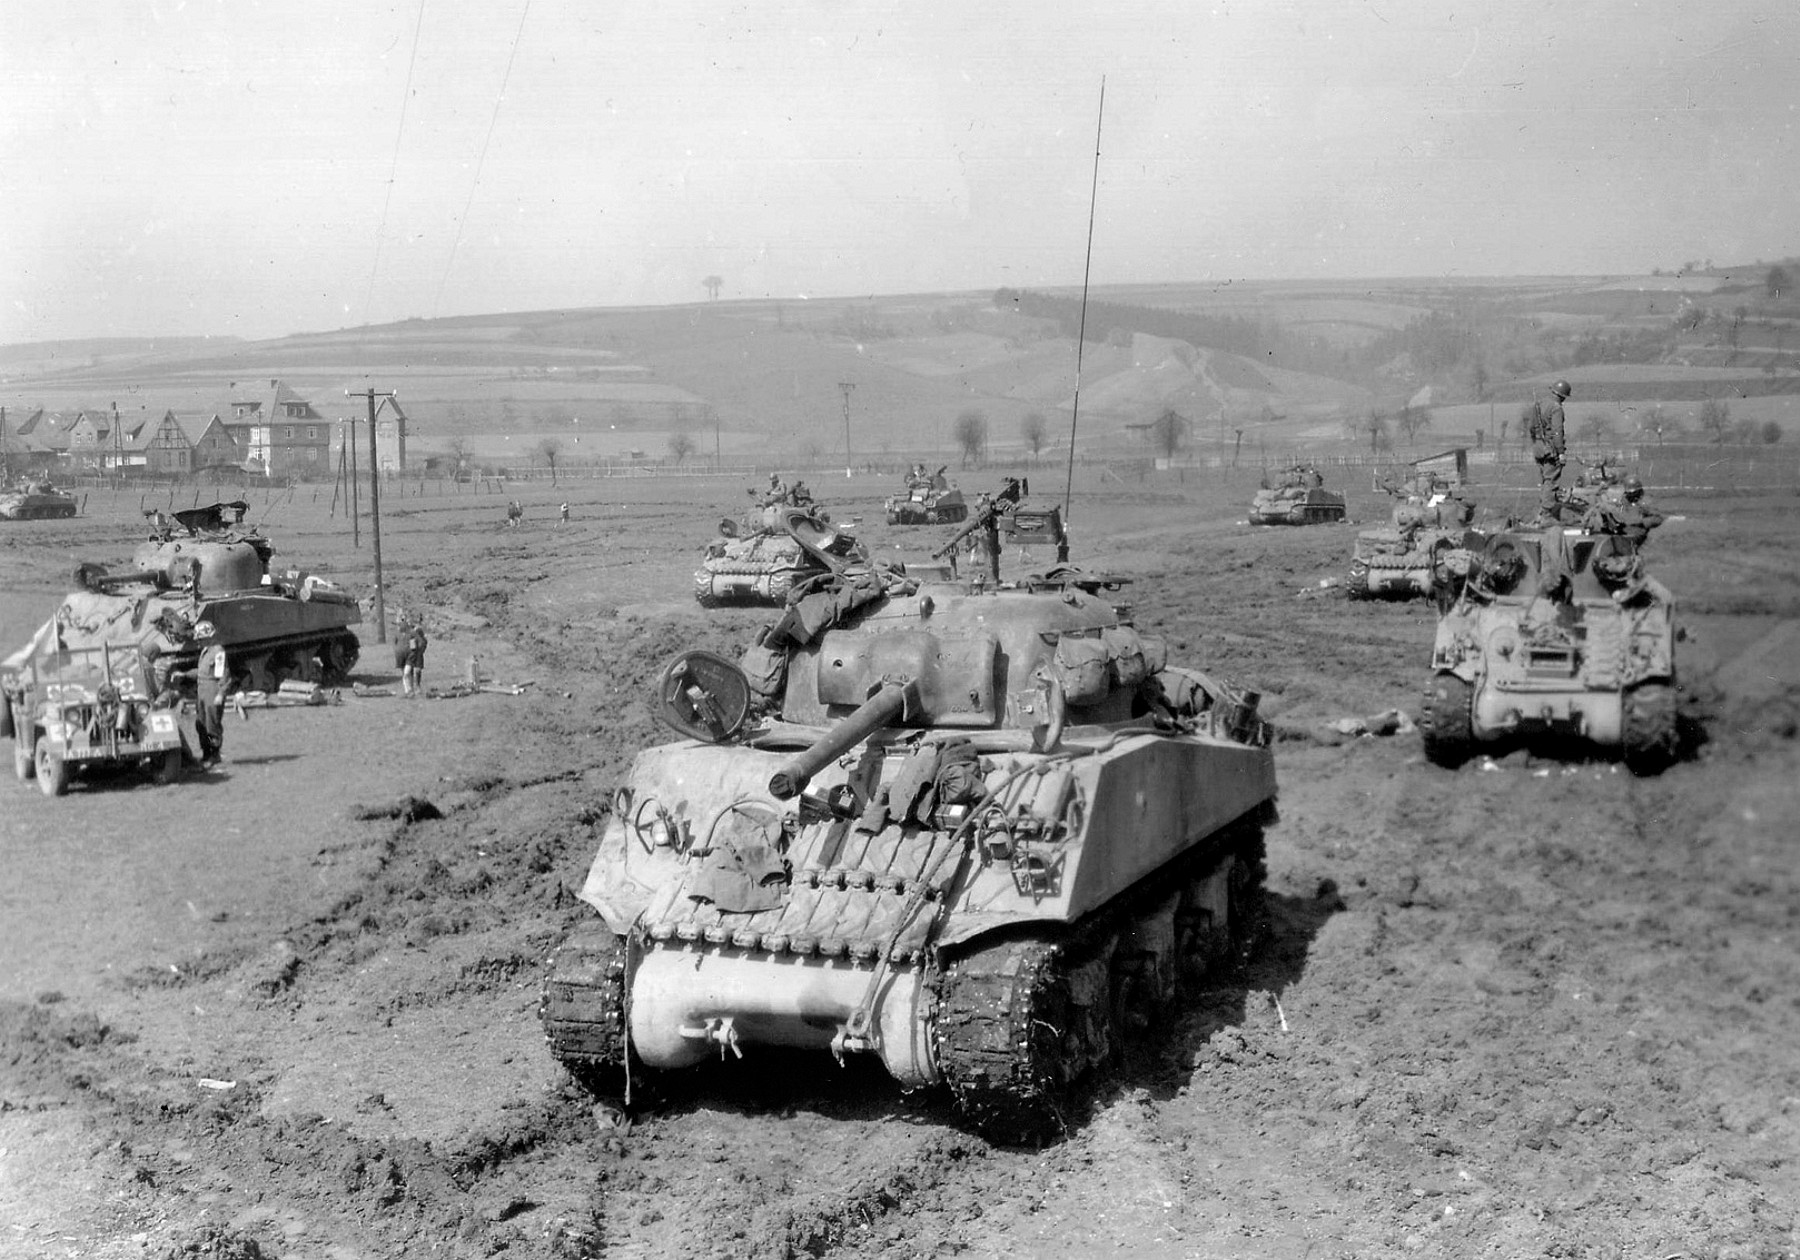 9th Armored Division, Westhousen, Germany, 10 April 1945